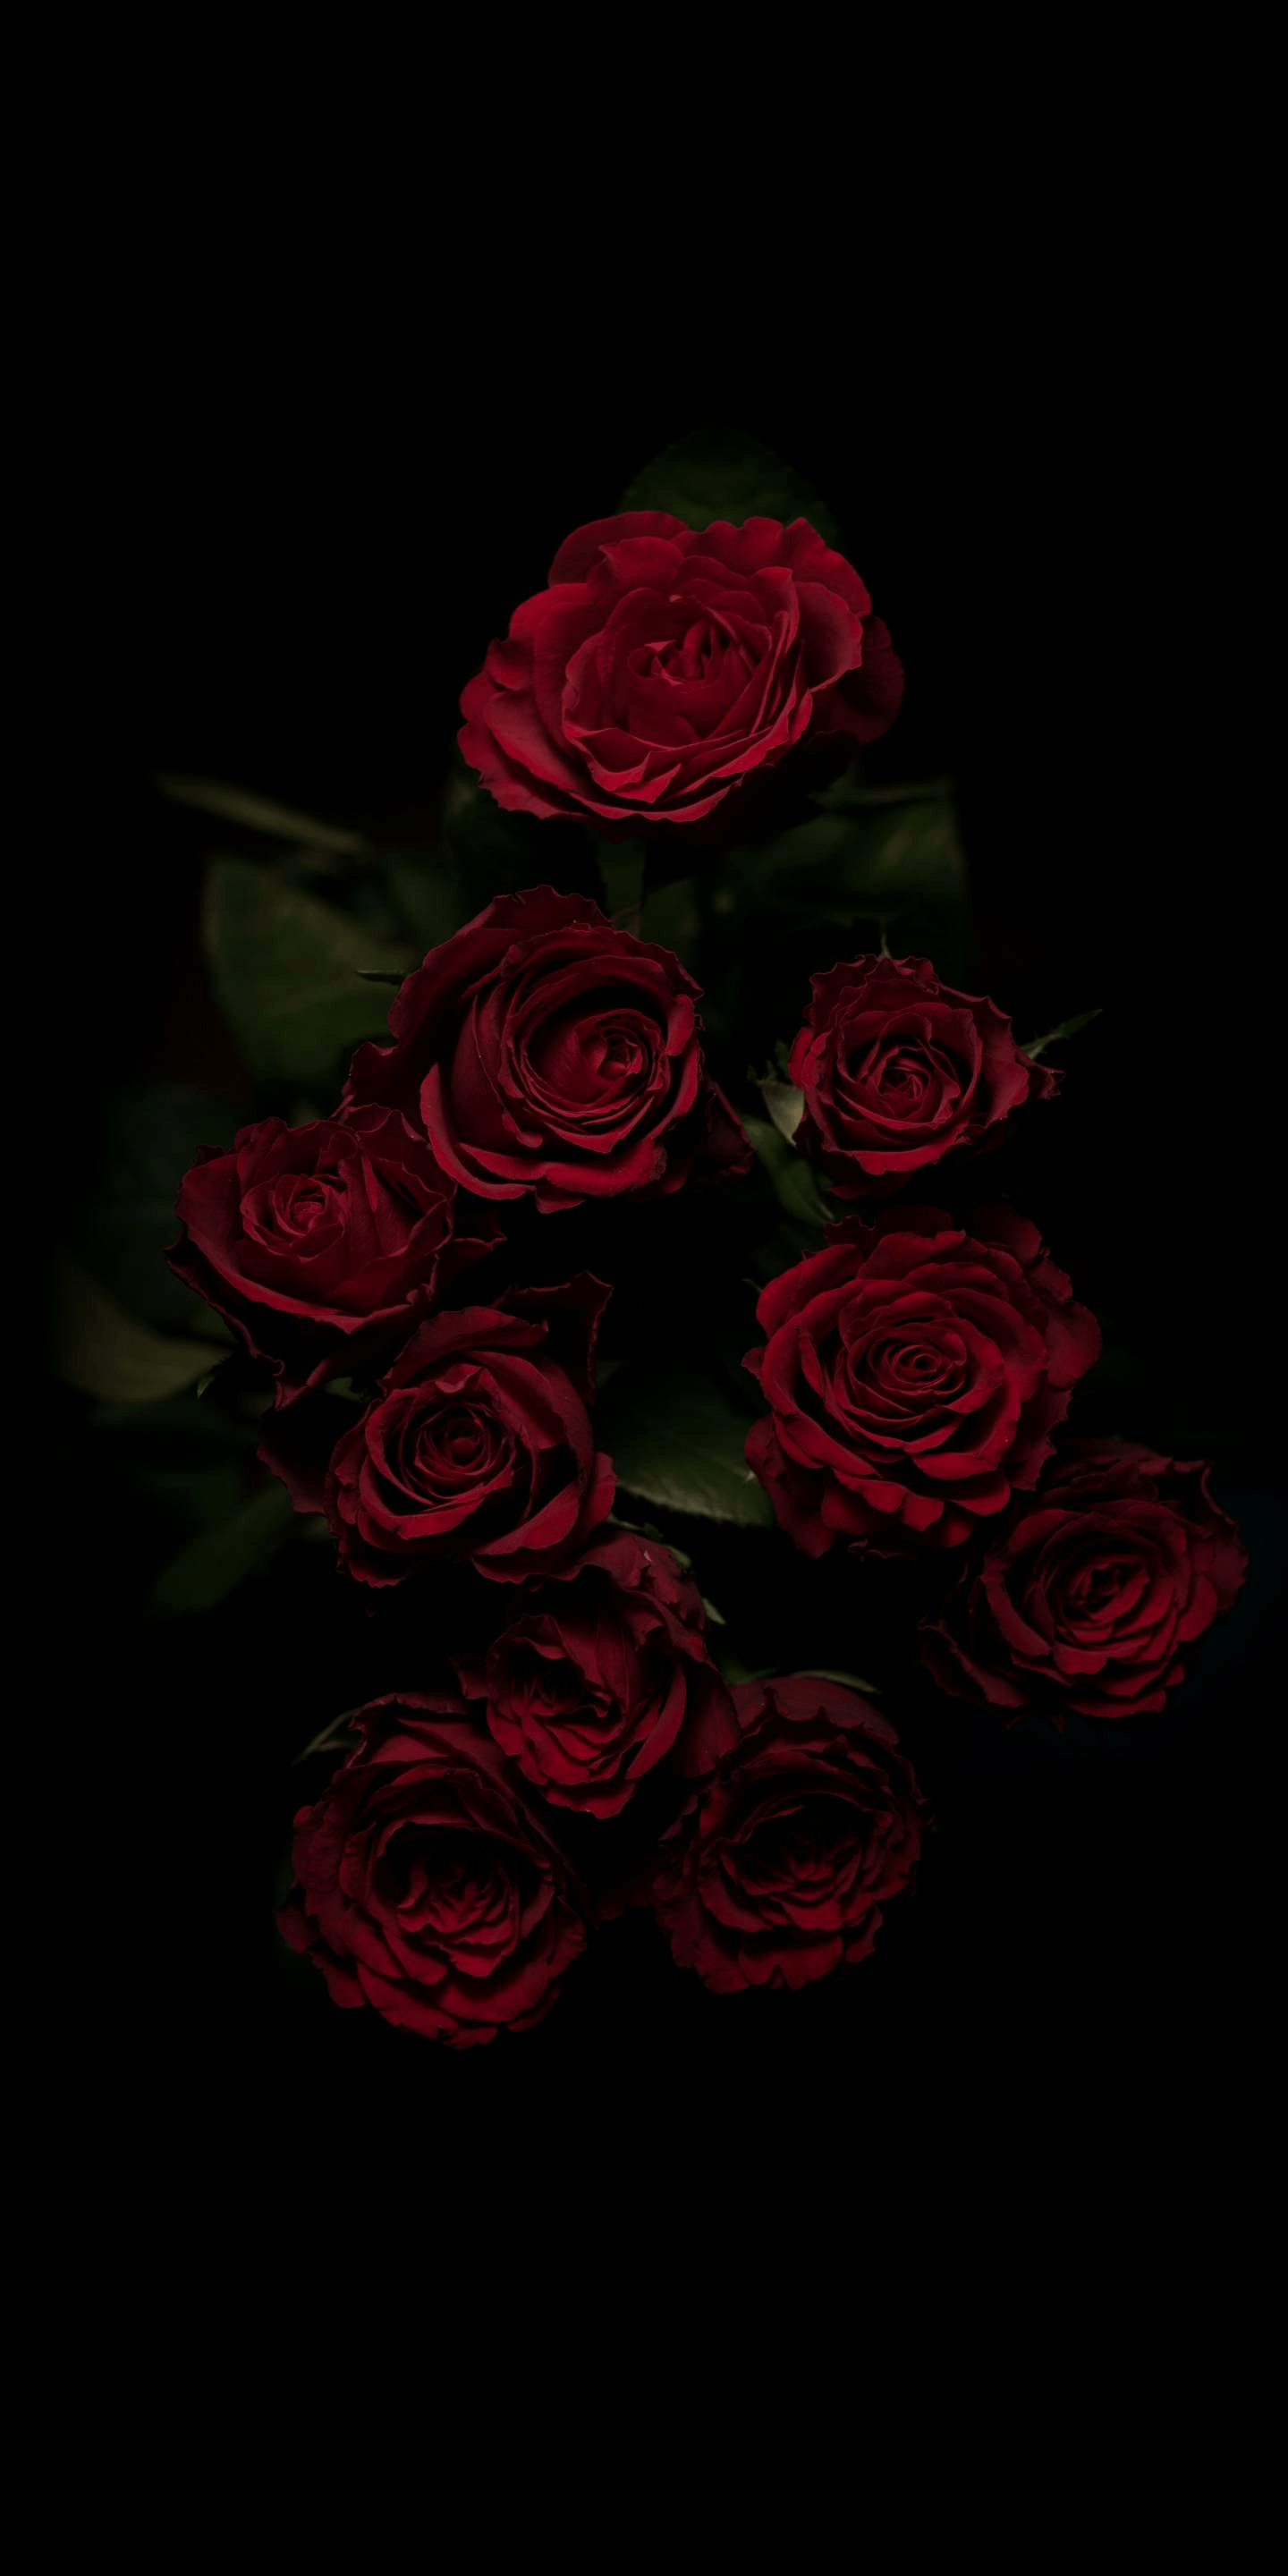 Aesthetic Edgy Aesthetic Dead Rose Wallpaper